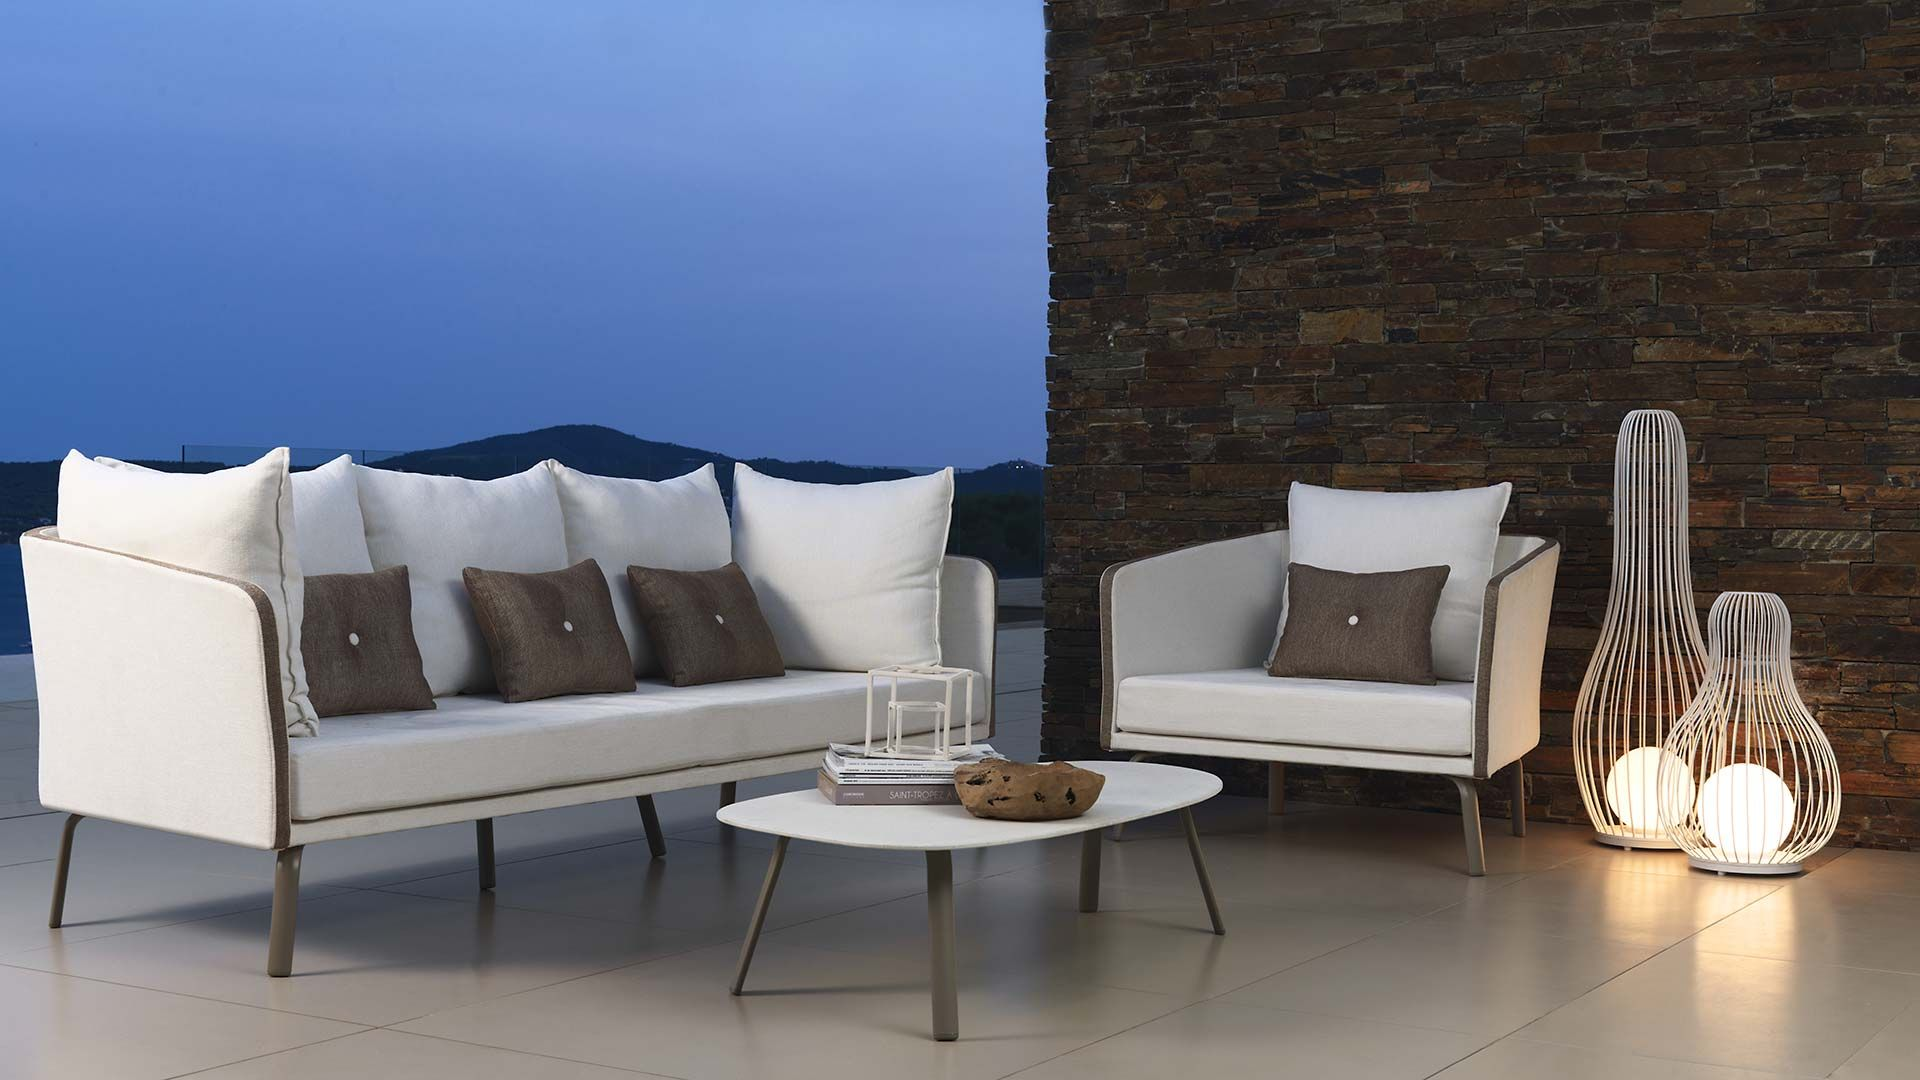 Talenti outdoor furniture from italy sofa armchairs chairs luxury coastal living